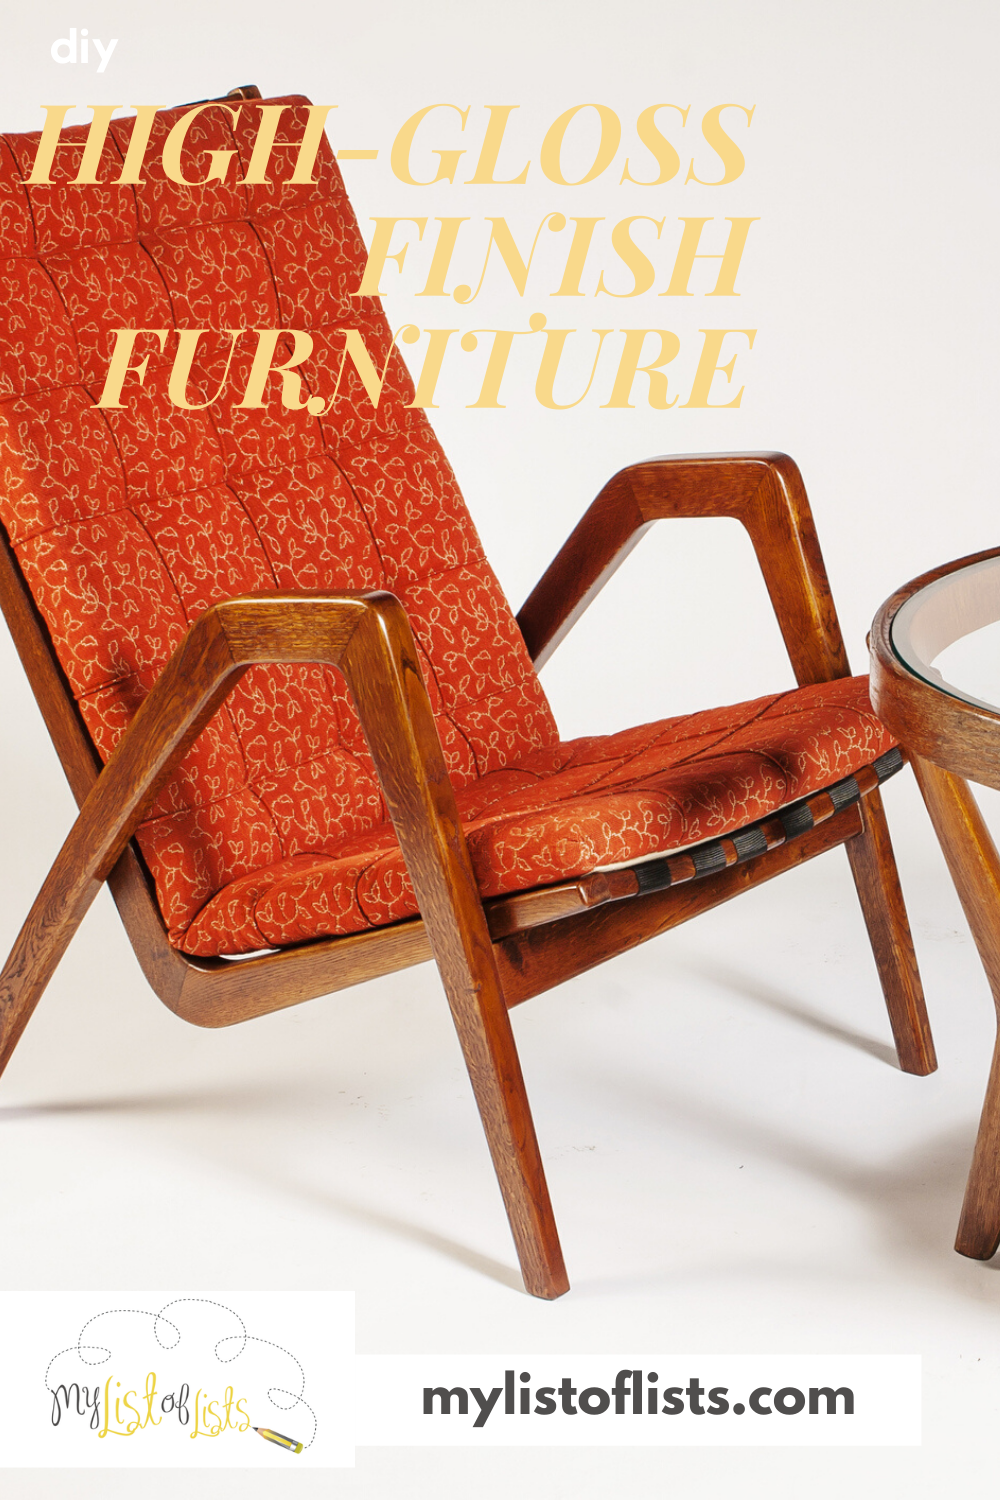 Looking for an easy DIY project that will make your furniture stand out? It's easy with out tutorial to give your furniture a high-gloss finish. Keep reading to learn more. #mylistoflistsblog #howtofinishfurniture #DIY #furniturefinish